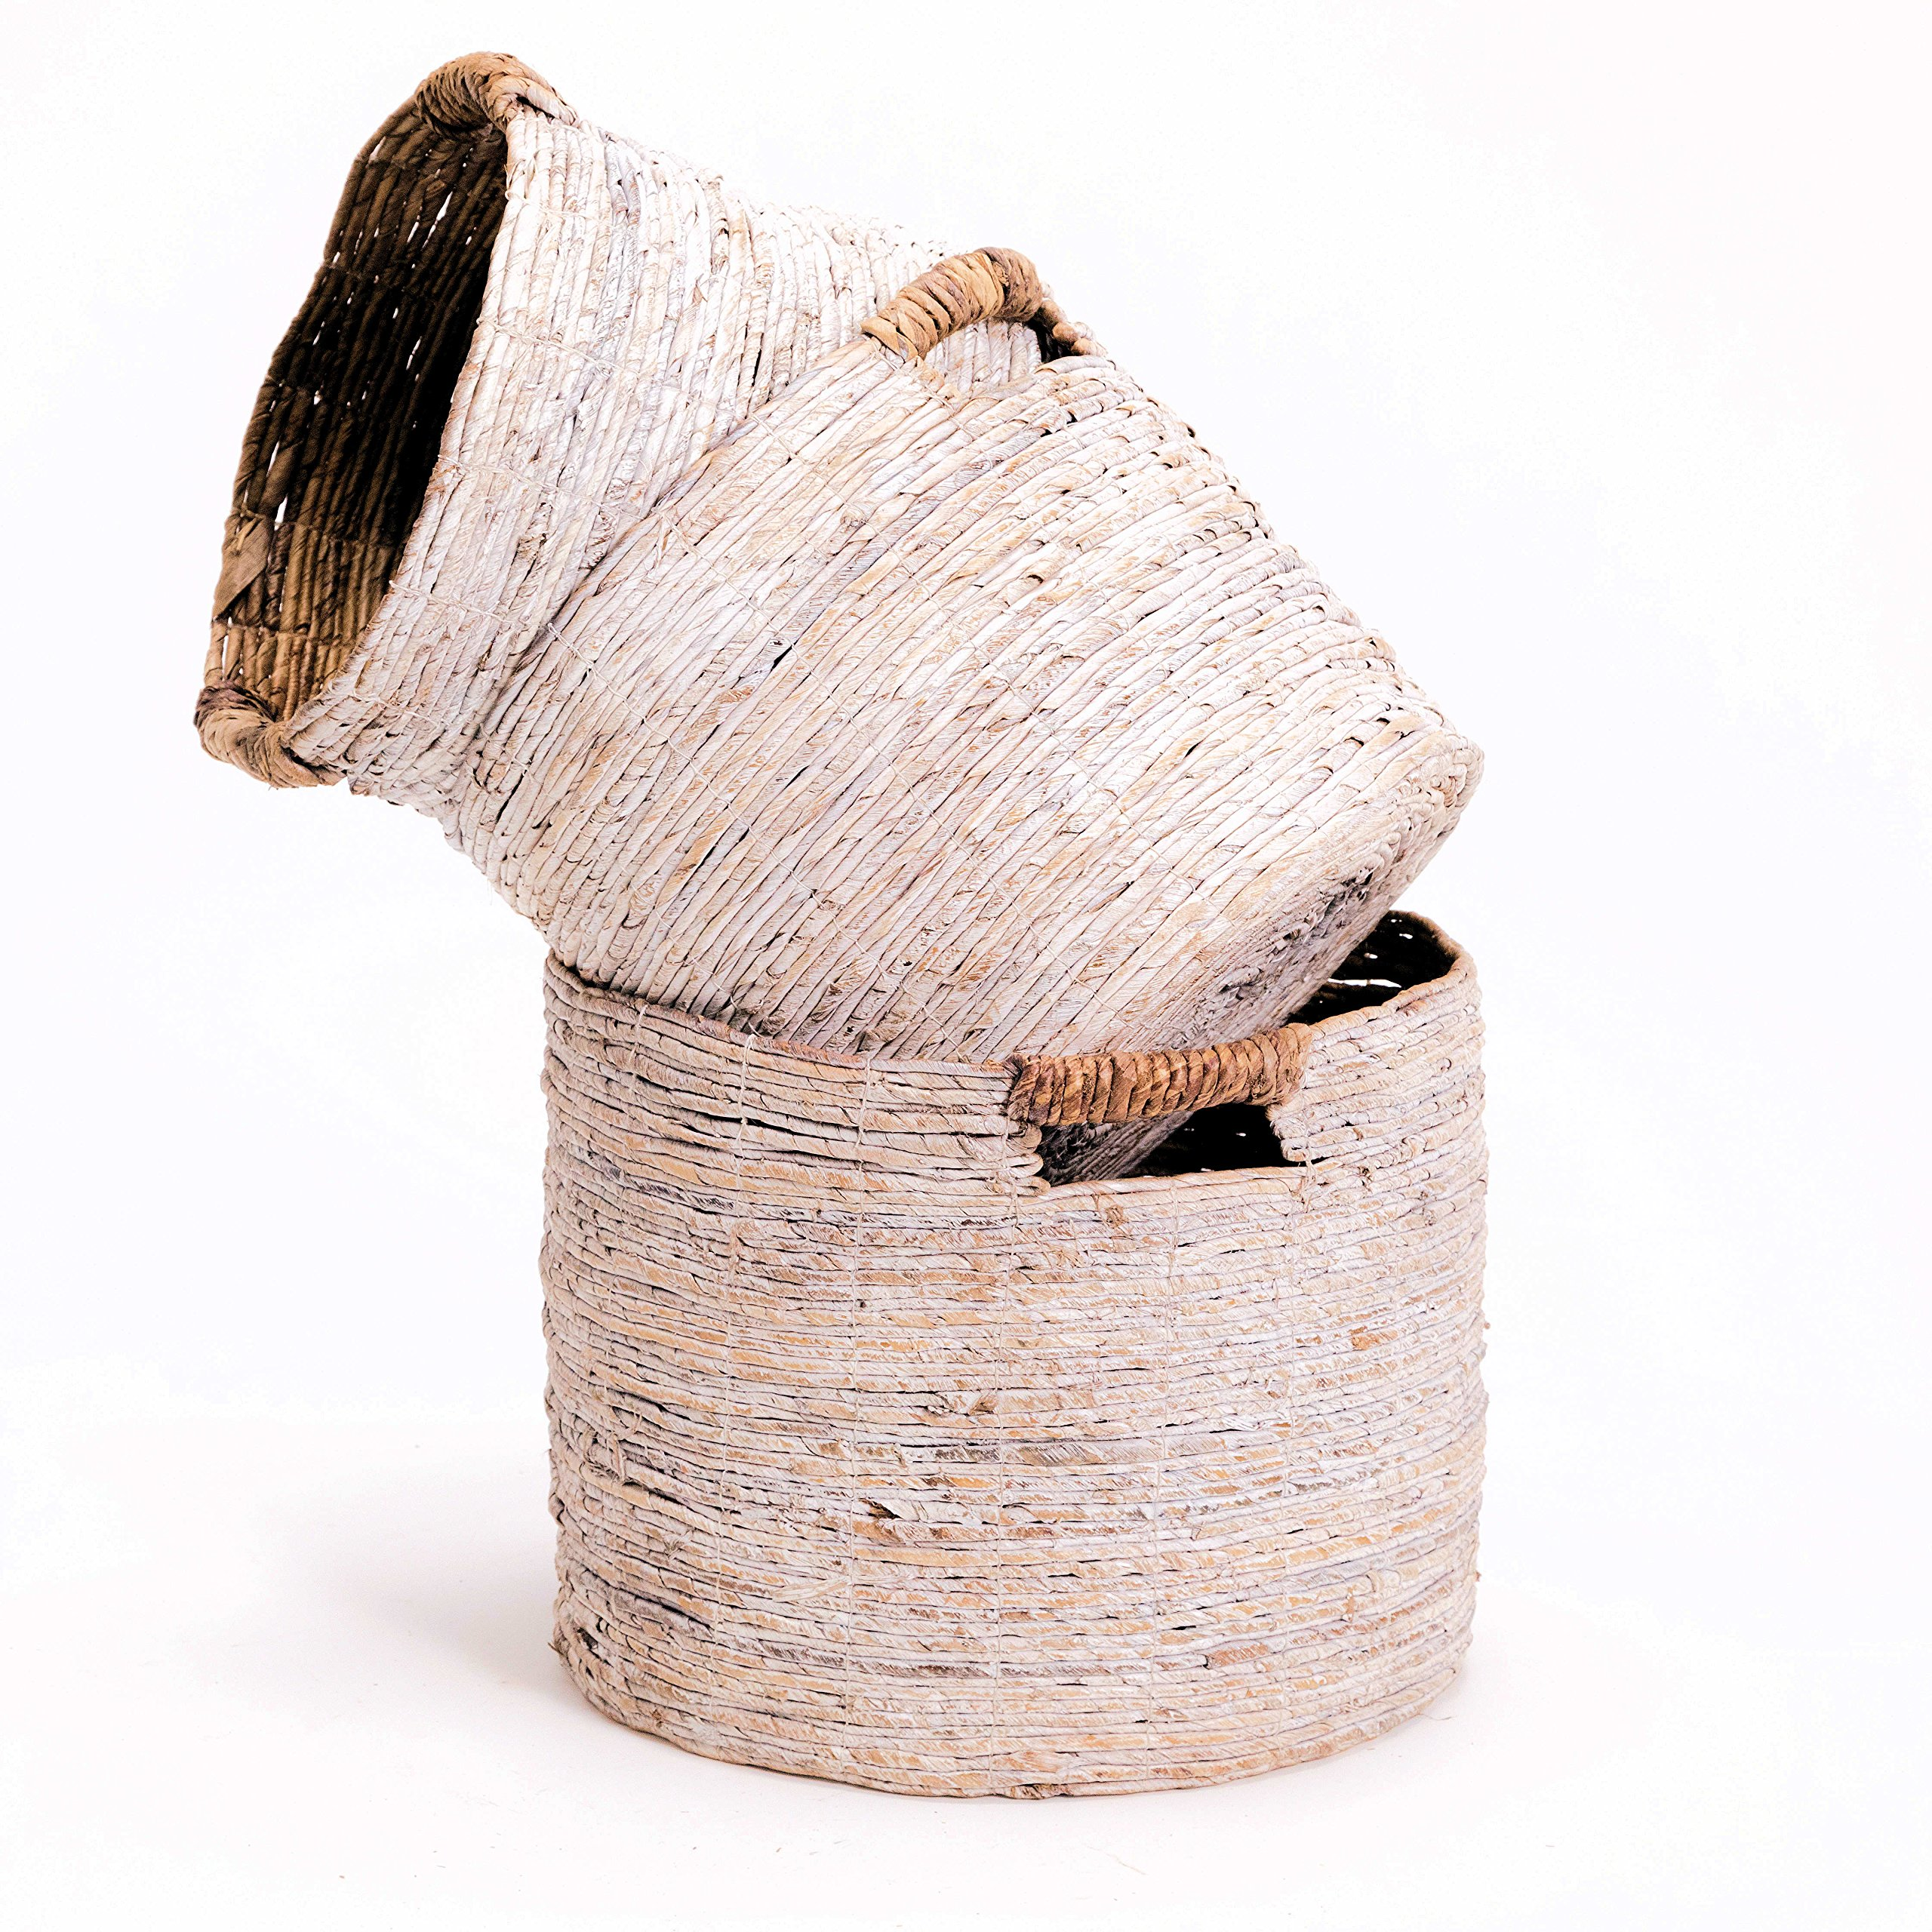 The Romantic Beach Chic White Washed Banana Leaf Baskets, Set of 3, Chunky Weave, Rustic Natural Accents, Cut Out Handles, Various Sizes 10 1/2 Inches - Over 1 Ft. Long, By Whole House Worlds by Whole House Worlds